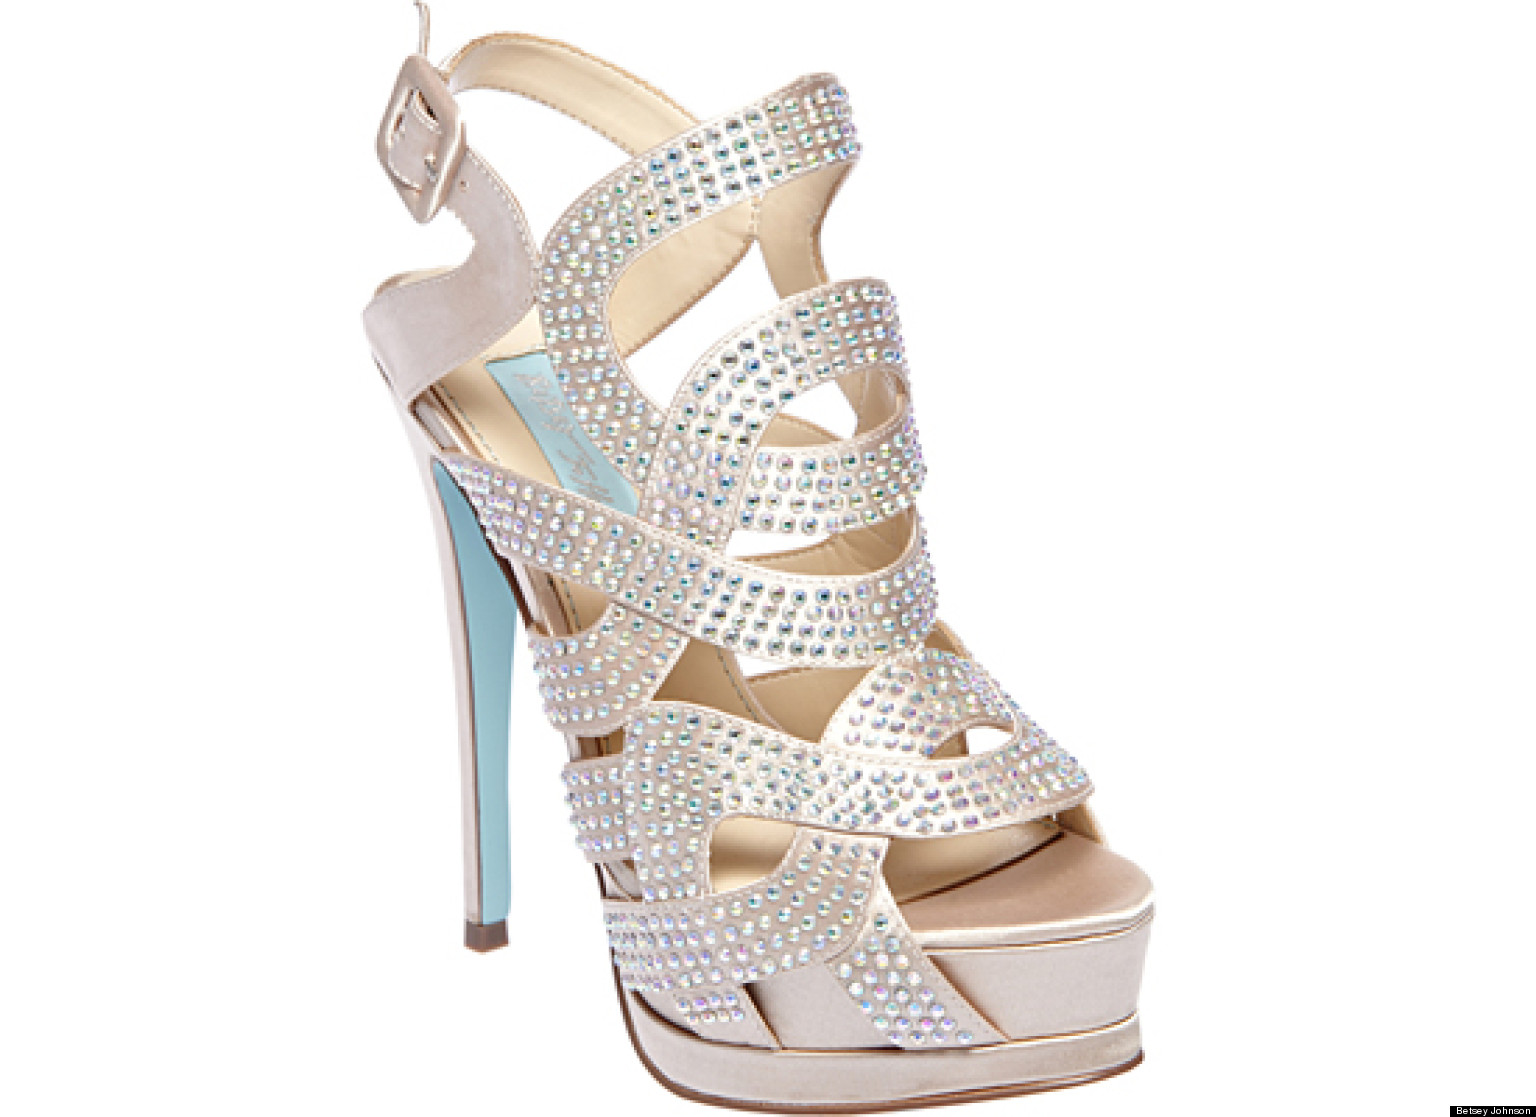 Betsey Johnsonu0027s Bridal Shoe Collection To Debut On Zappos.com (PHOTOS) |  HuffPost